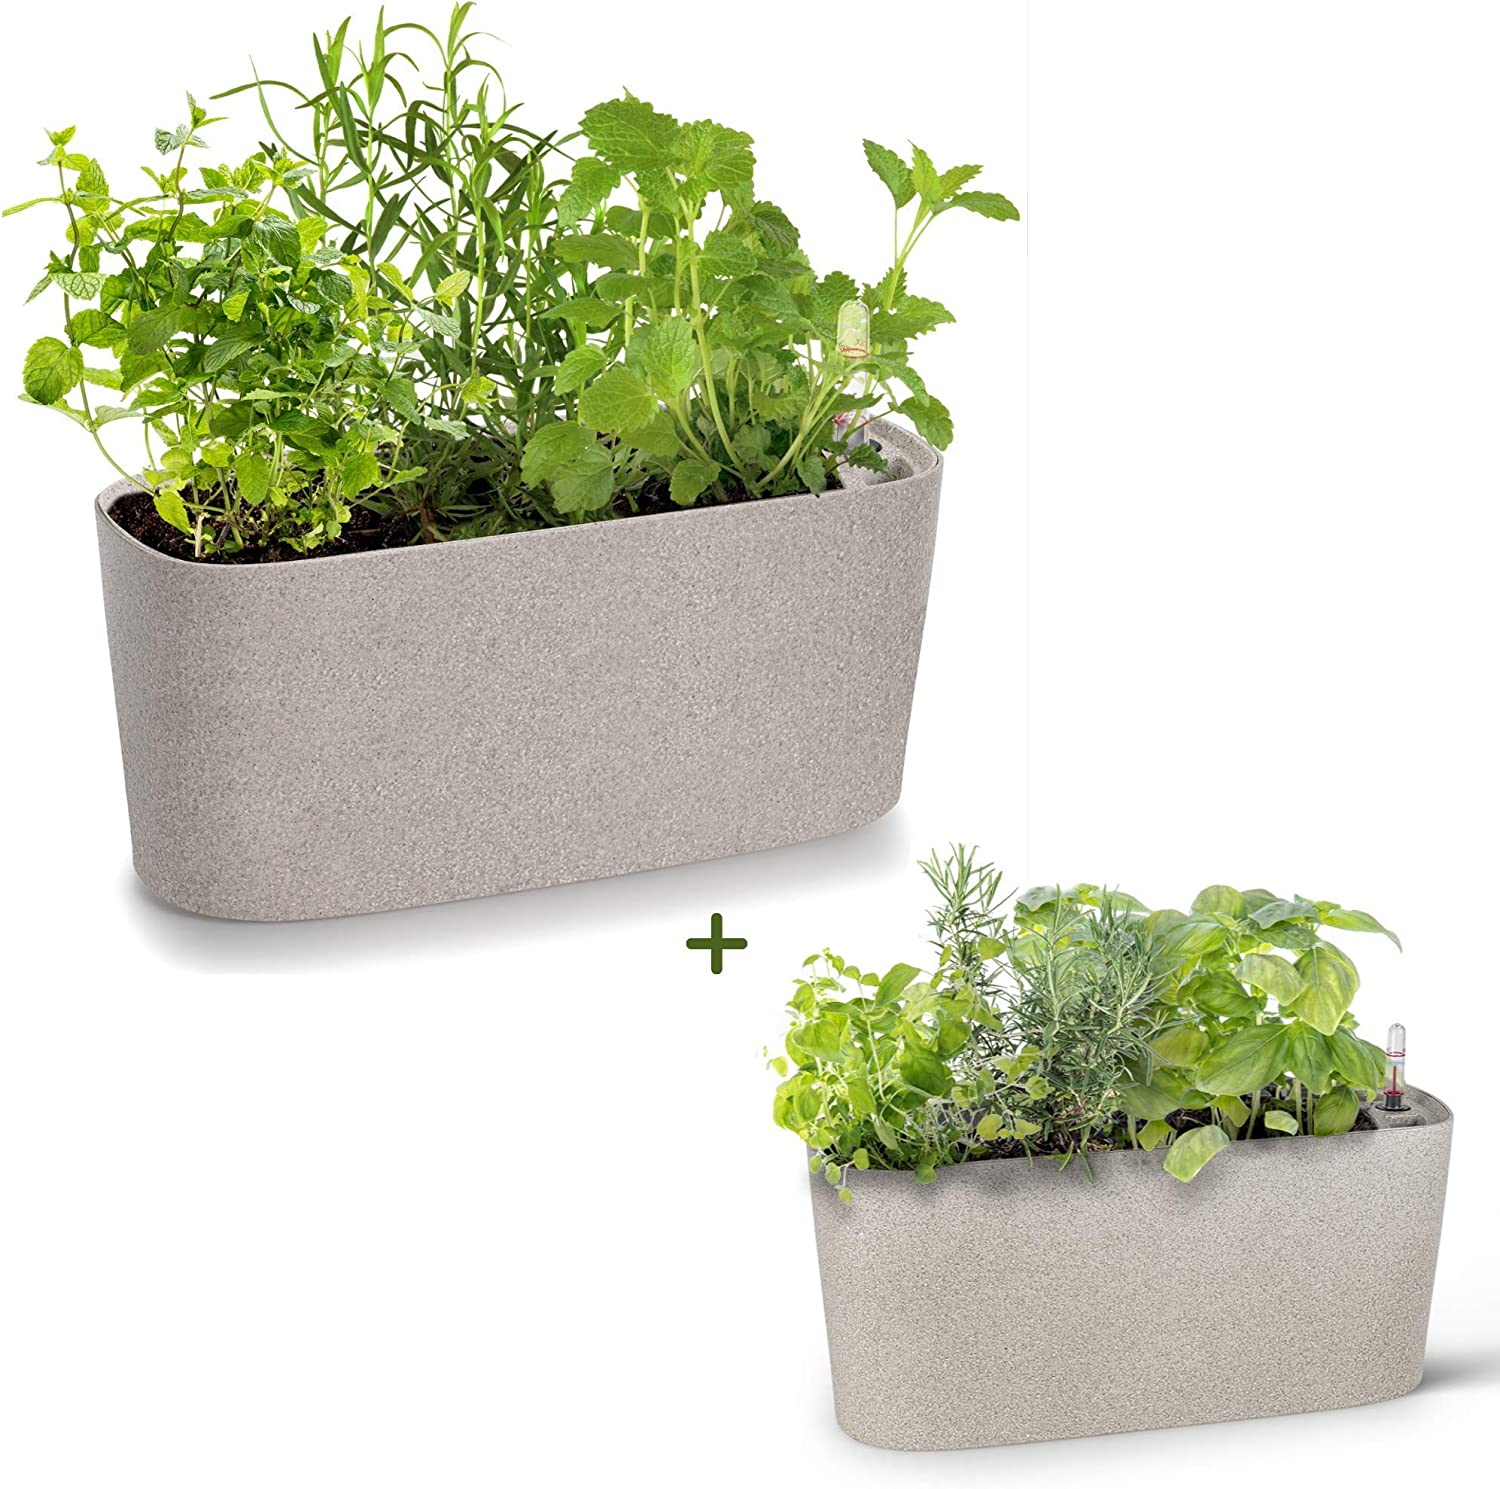 Large and Small Self Watering Planters Bundle | Windowsill Rectangular Herb Garden Pots | Plastic Planter Pots for Herbs, Greens, Flowers, House Plants and Succulents | Indoor/Outdoor Flowerpots